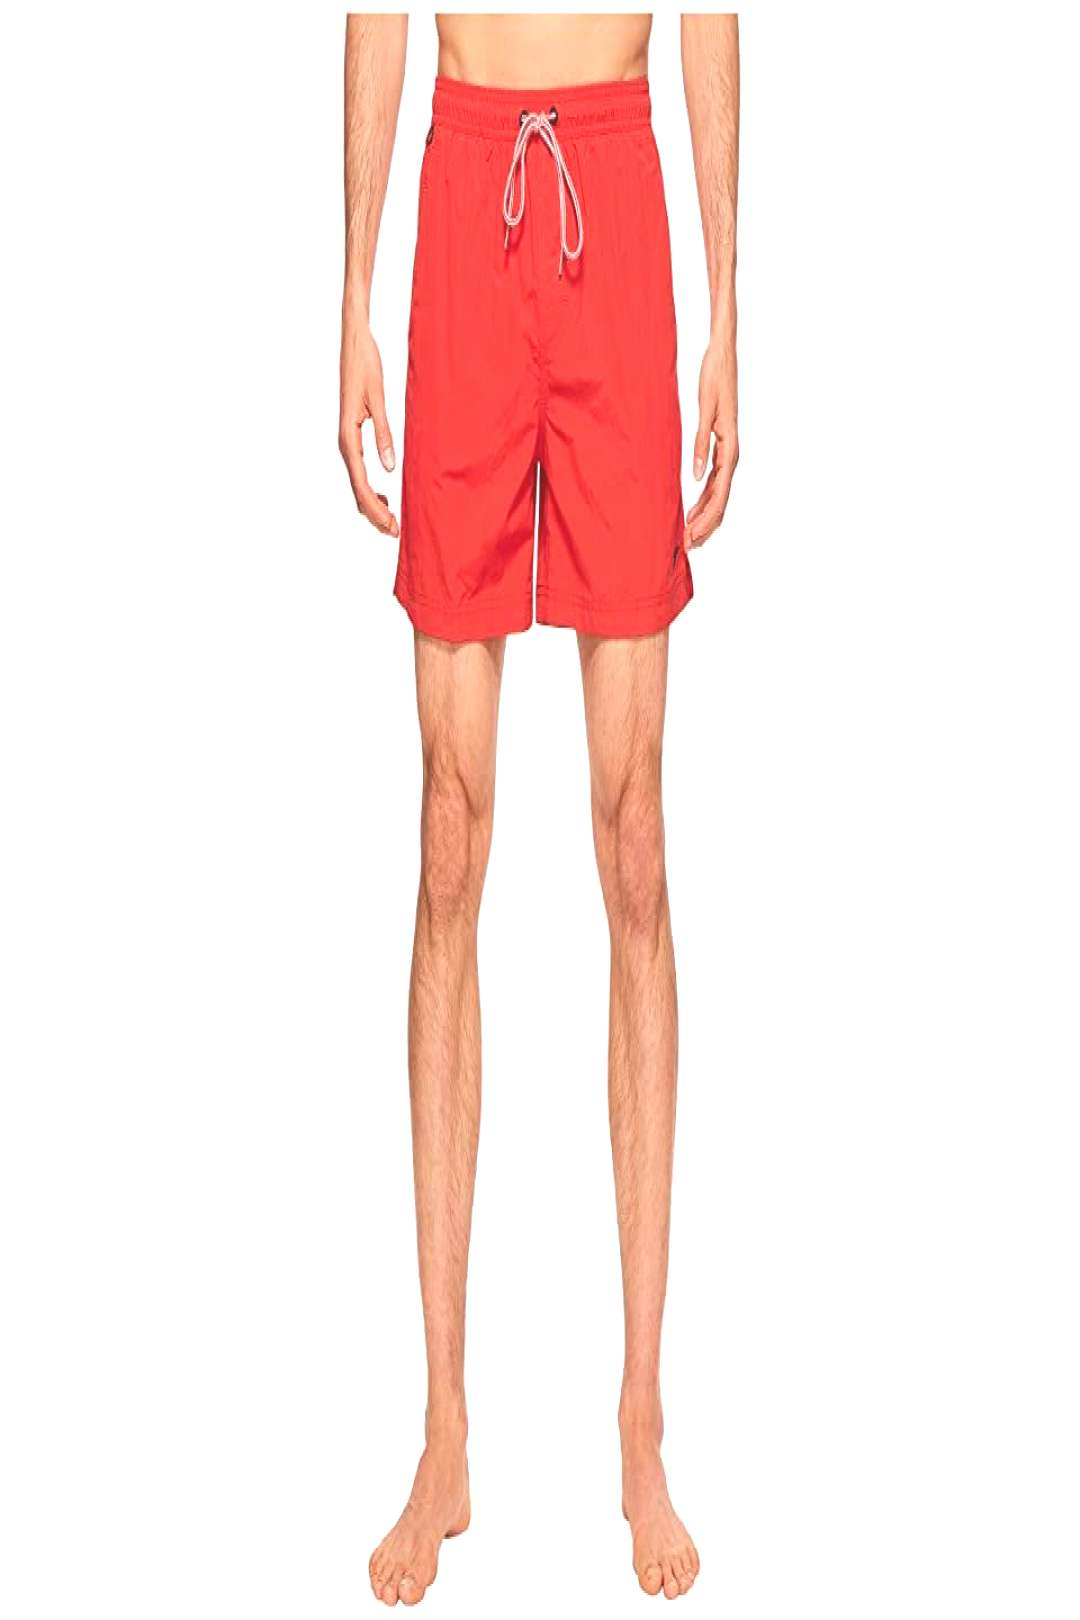 Speedo Sunray Volley (Atomic Red) Mens Swimwear. Youre ready for anything that will come your way